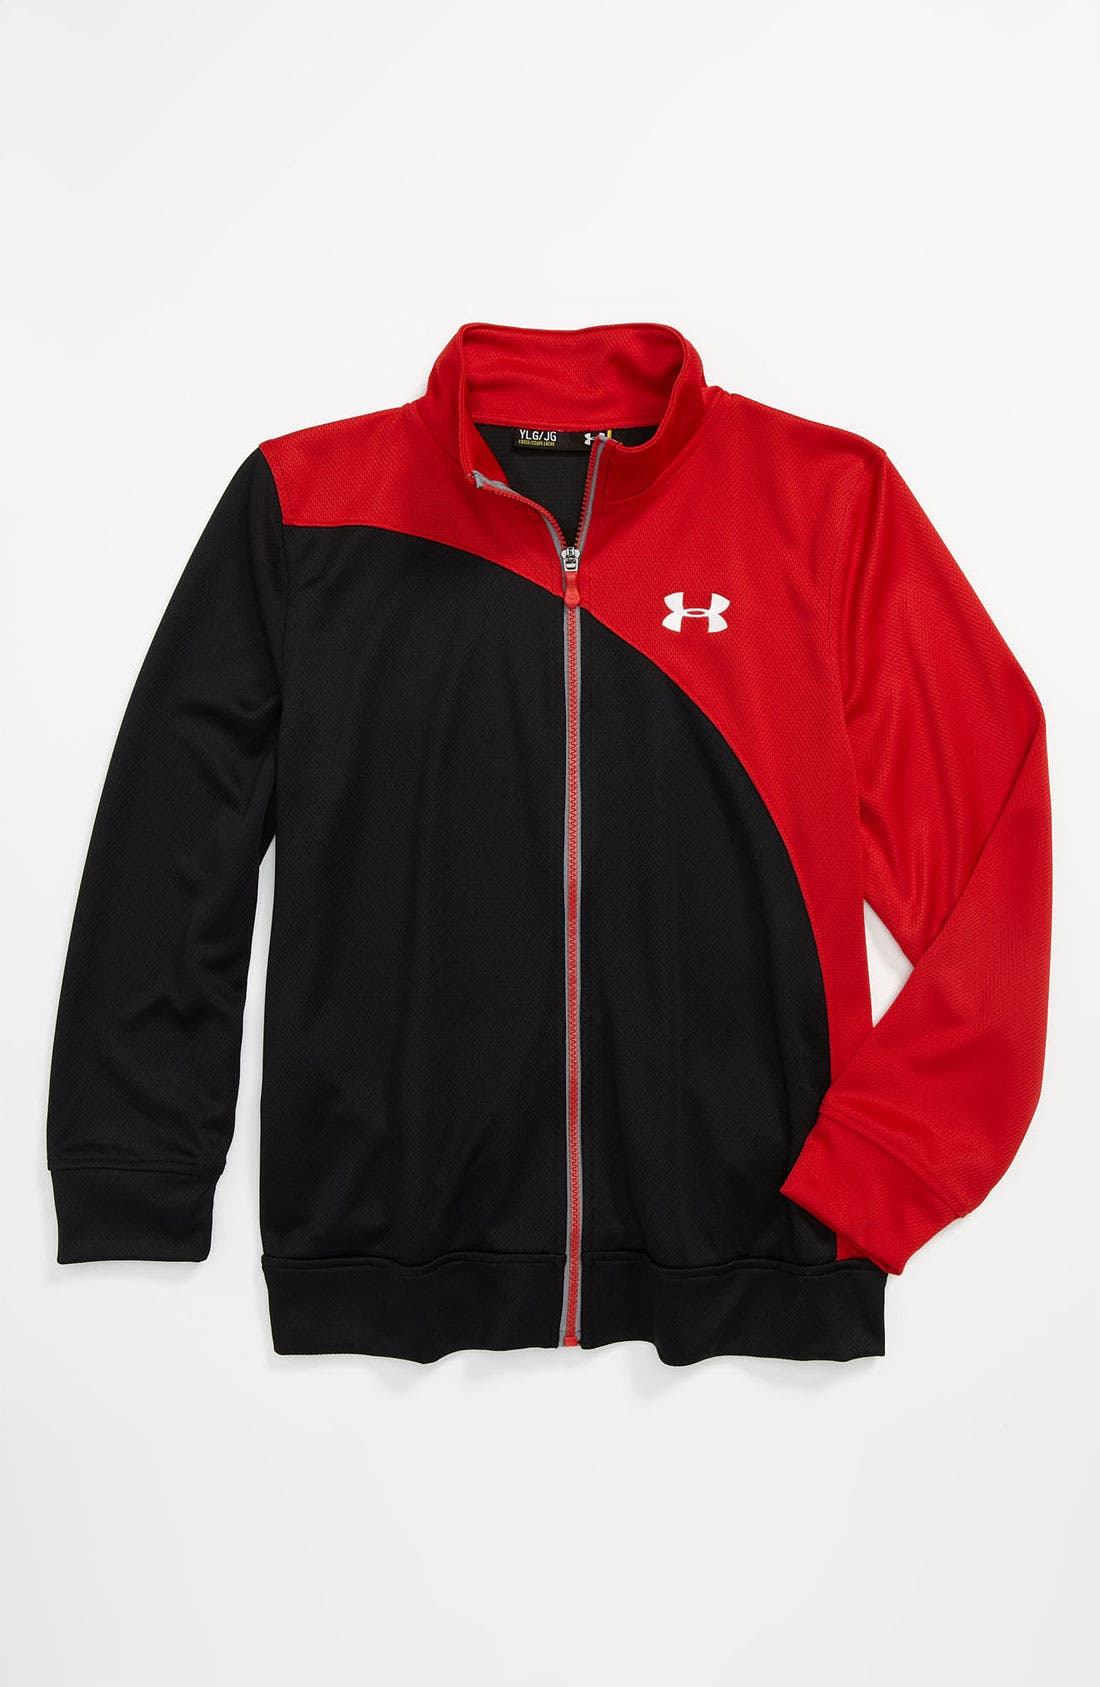 Alternate Image 1 Selected - Under Armour 'Warm Up' Jacket (Big Boys)